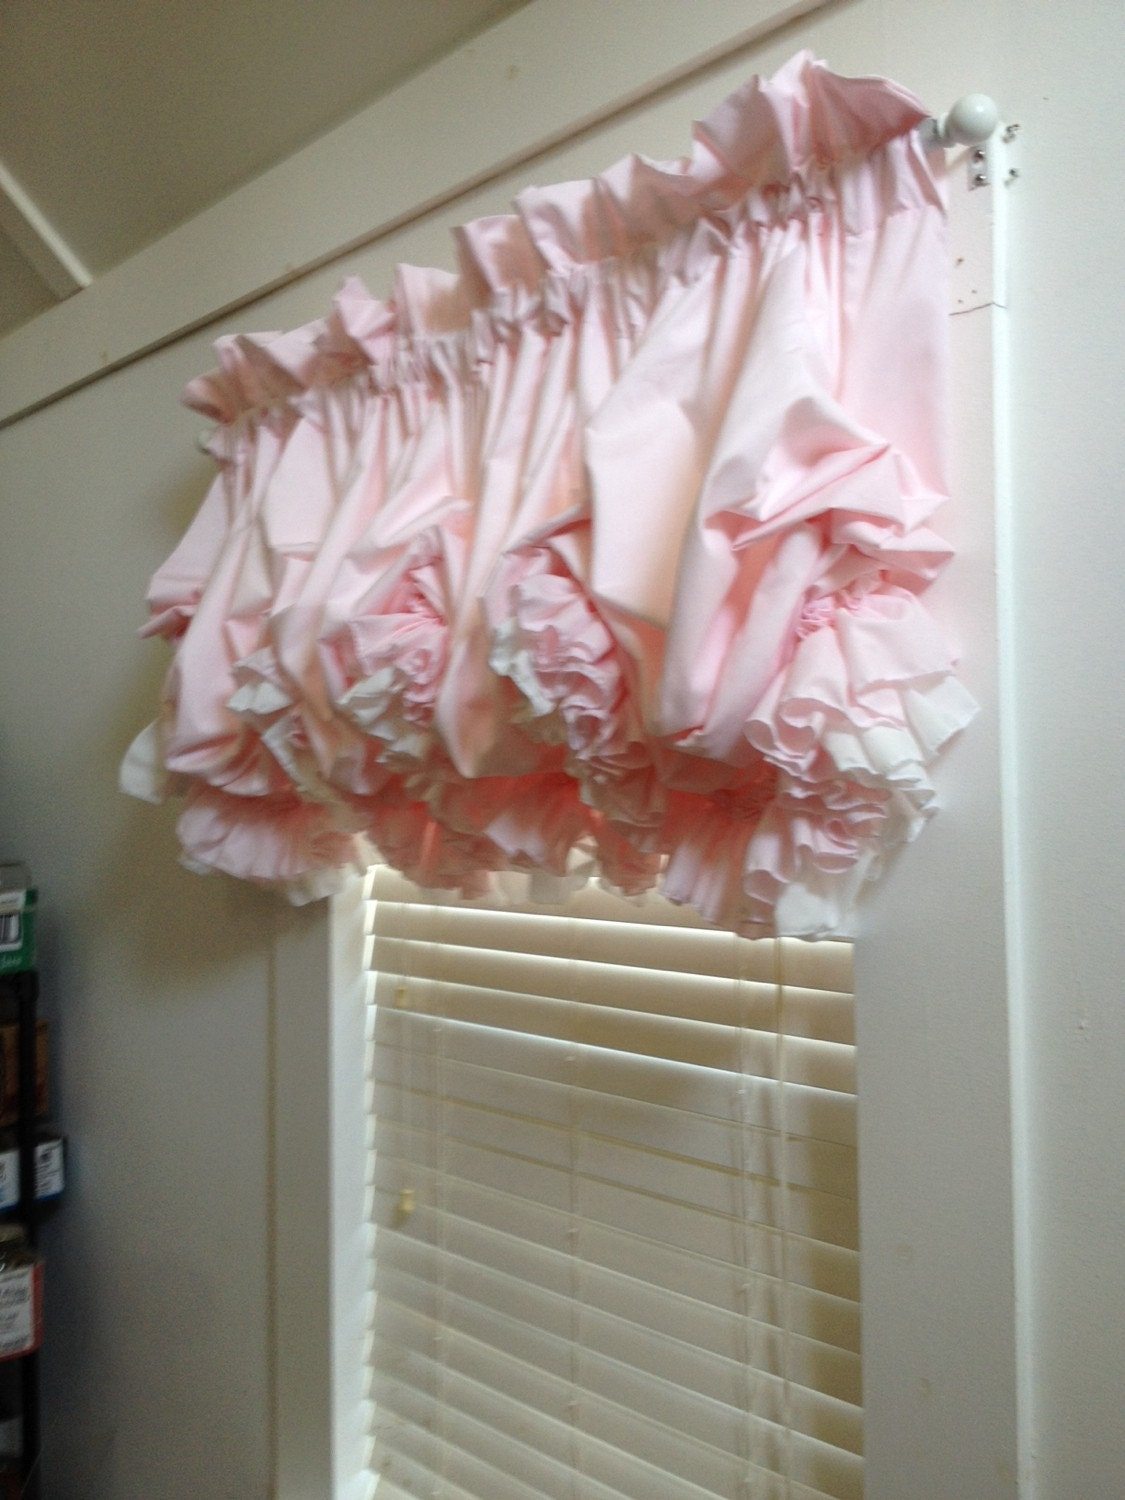 Ho how to tie balloon curtains - Blush Pink Double Ruffle Balloon Valance Curtain